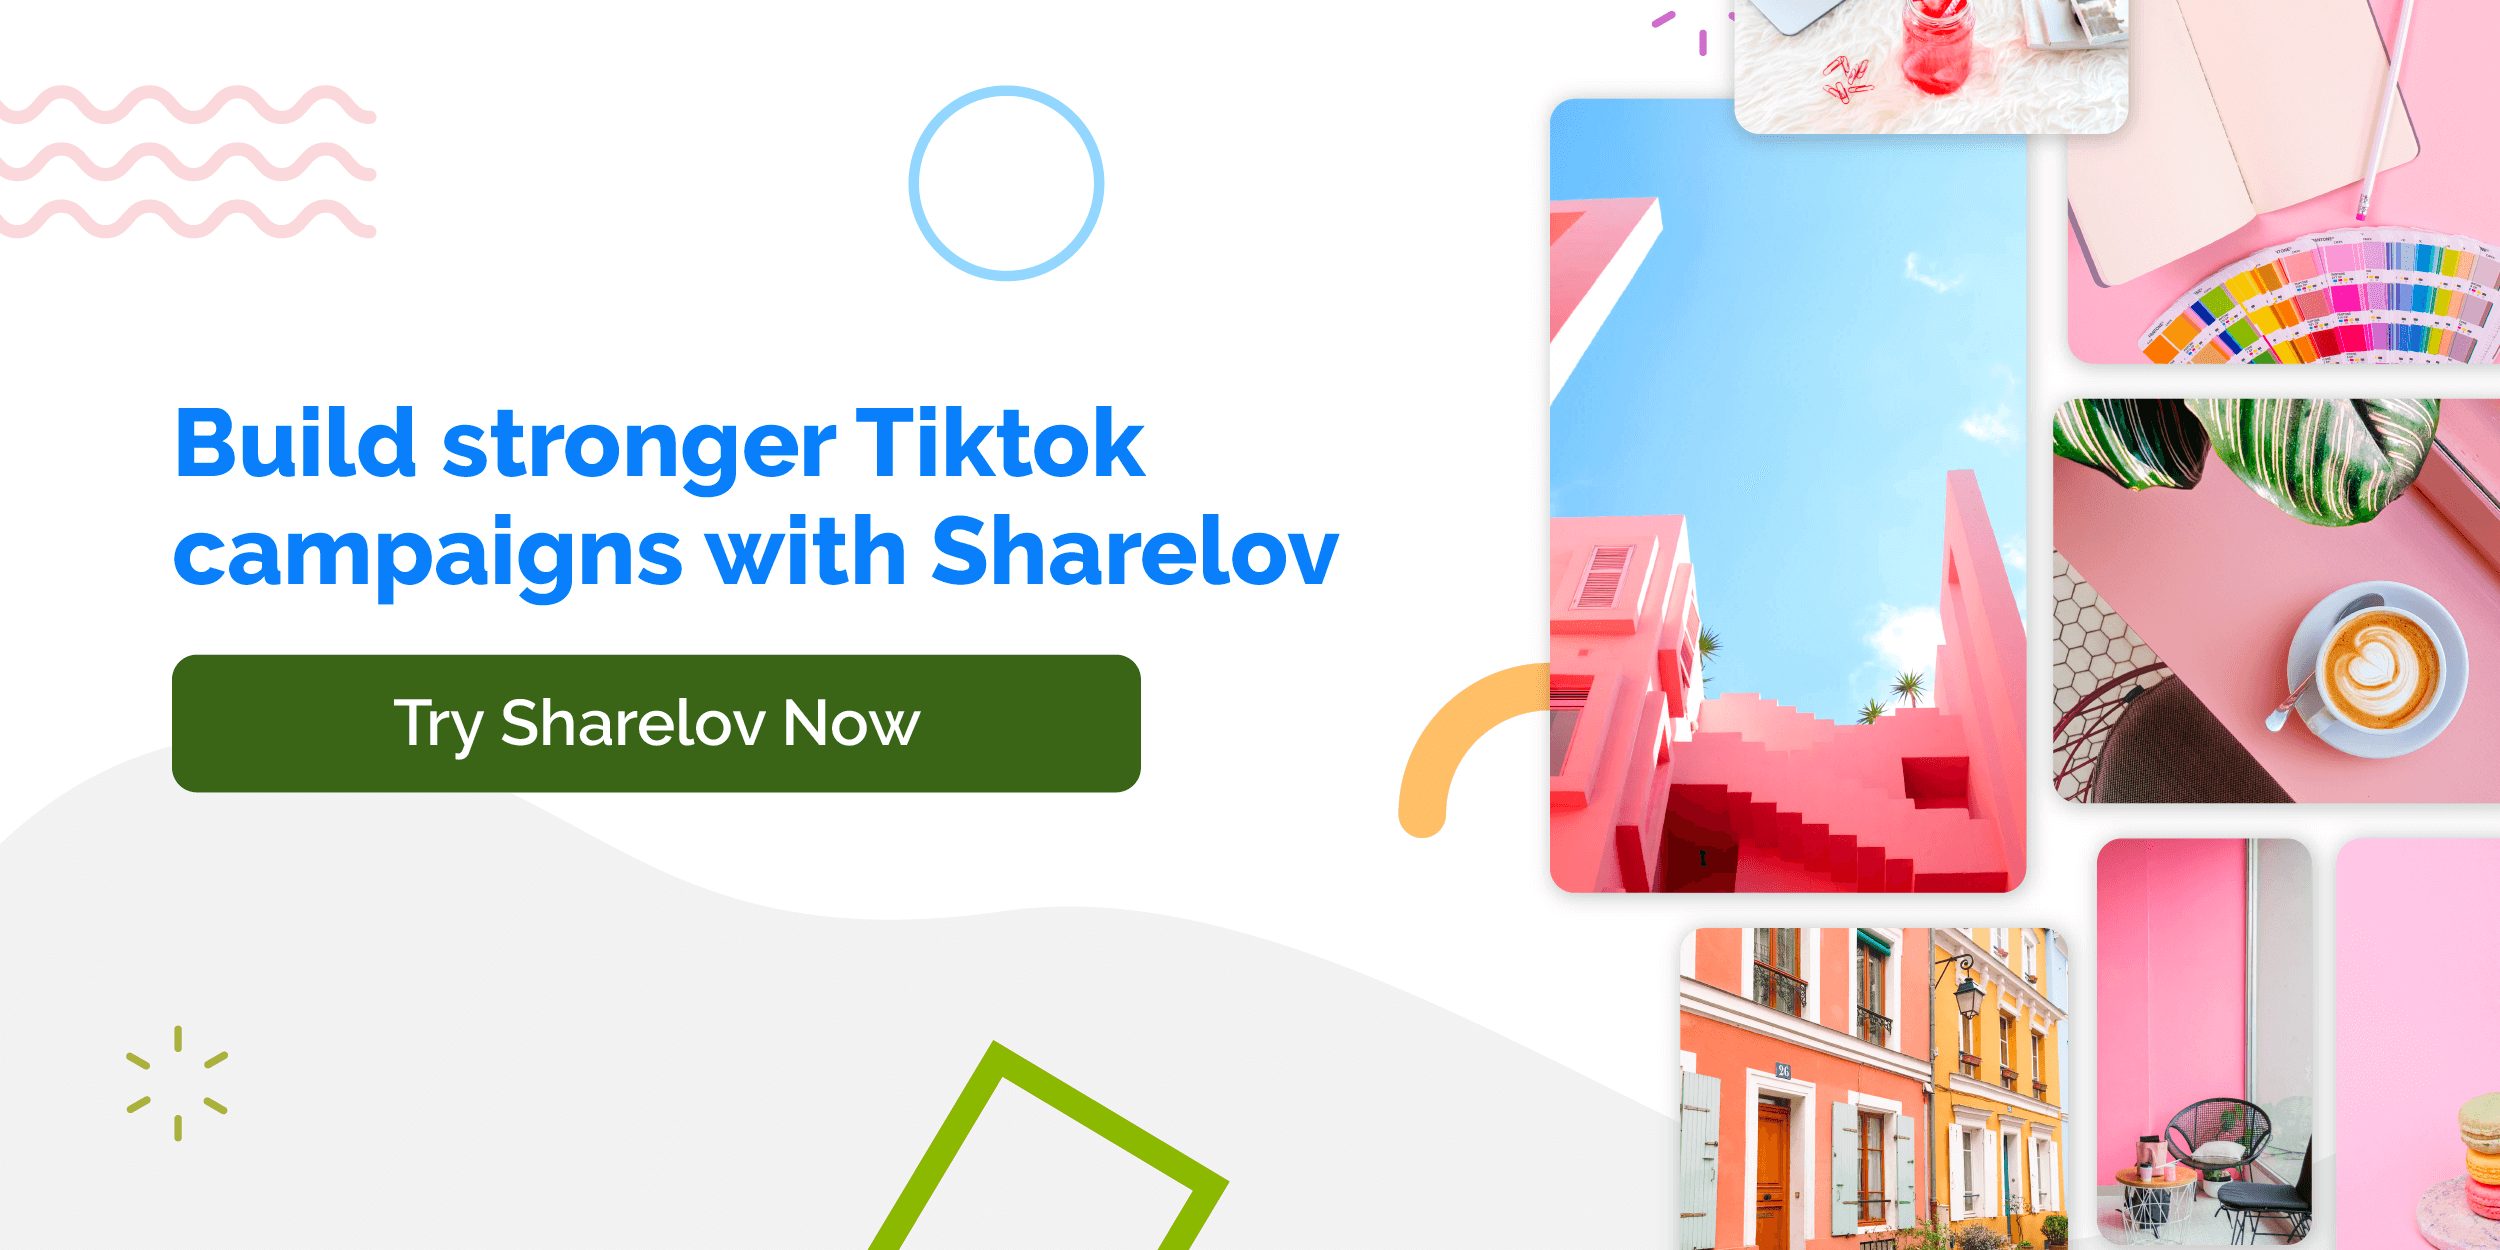 Build stronger TikTok campaigns with Sharelov